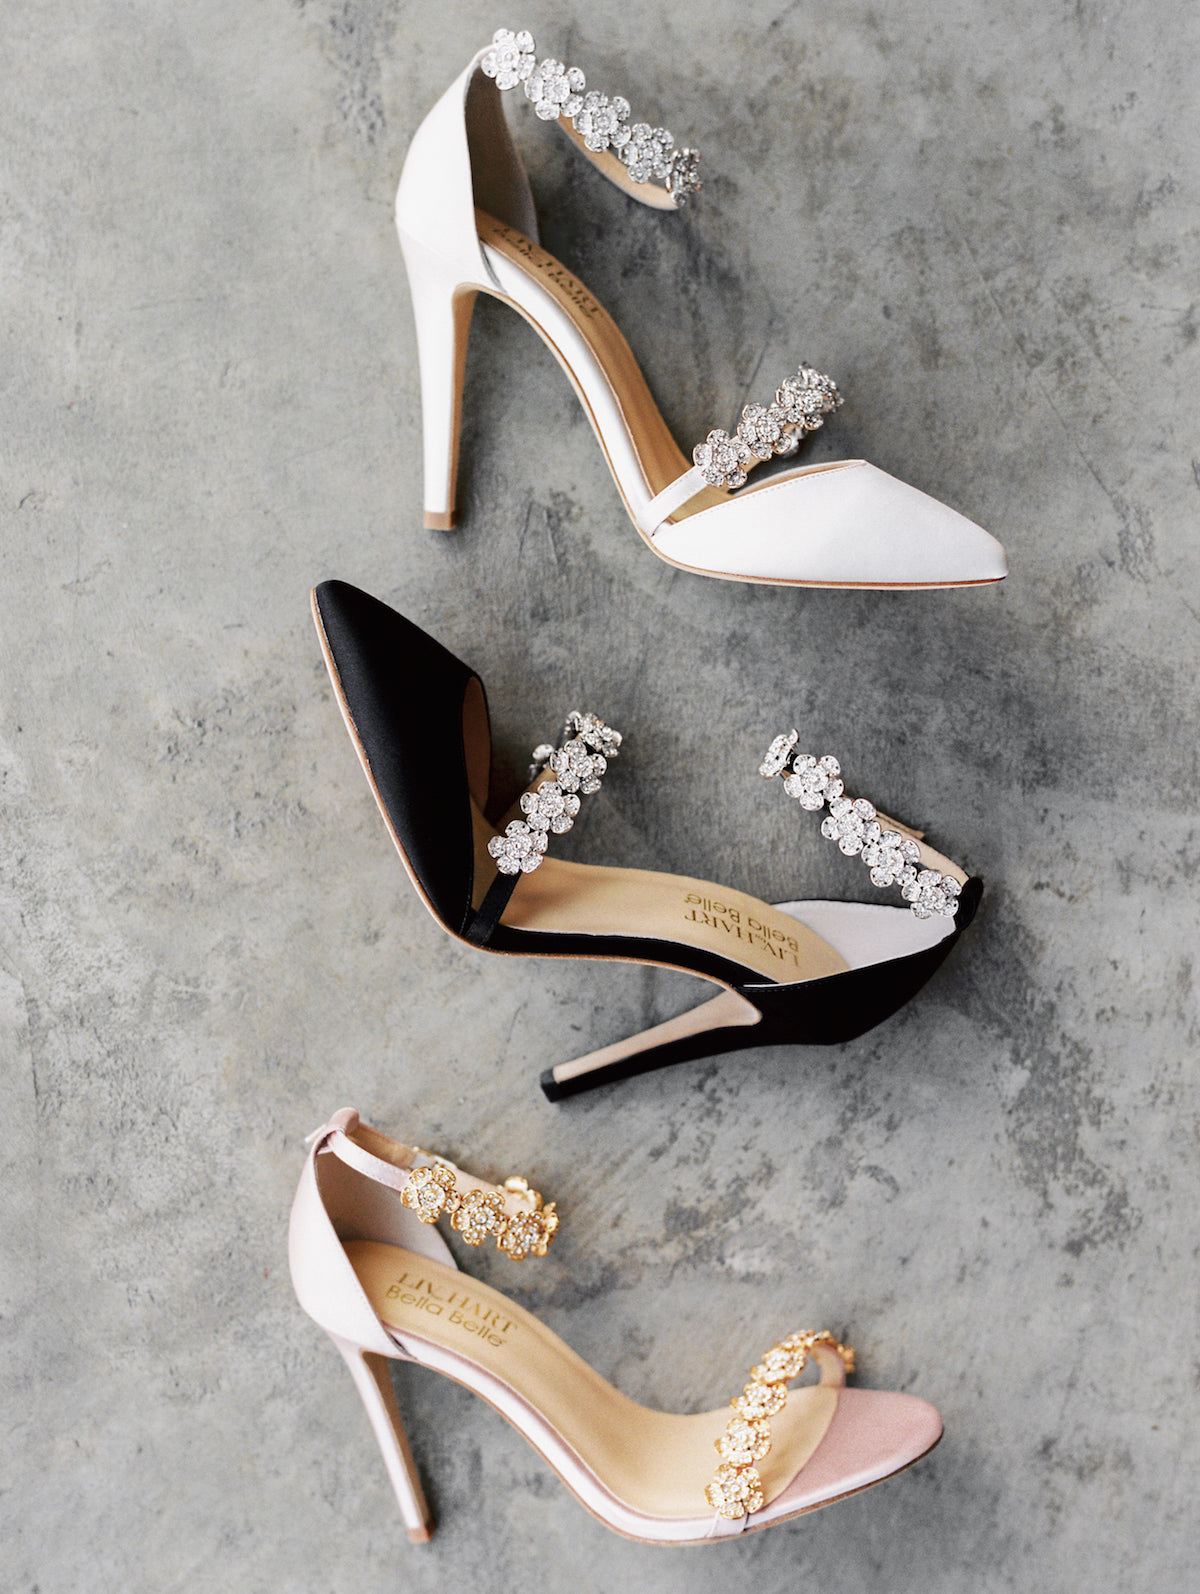 bella belle liv hart evening shoes collection